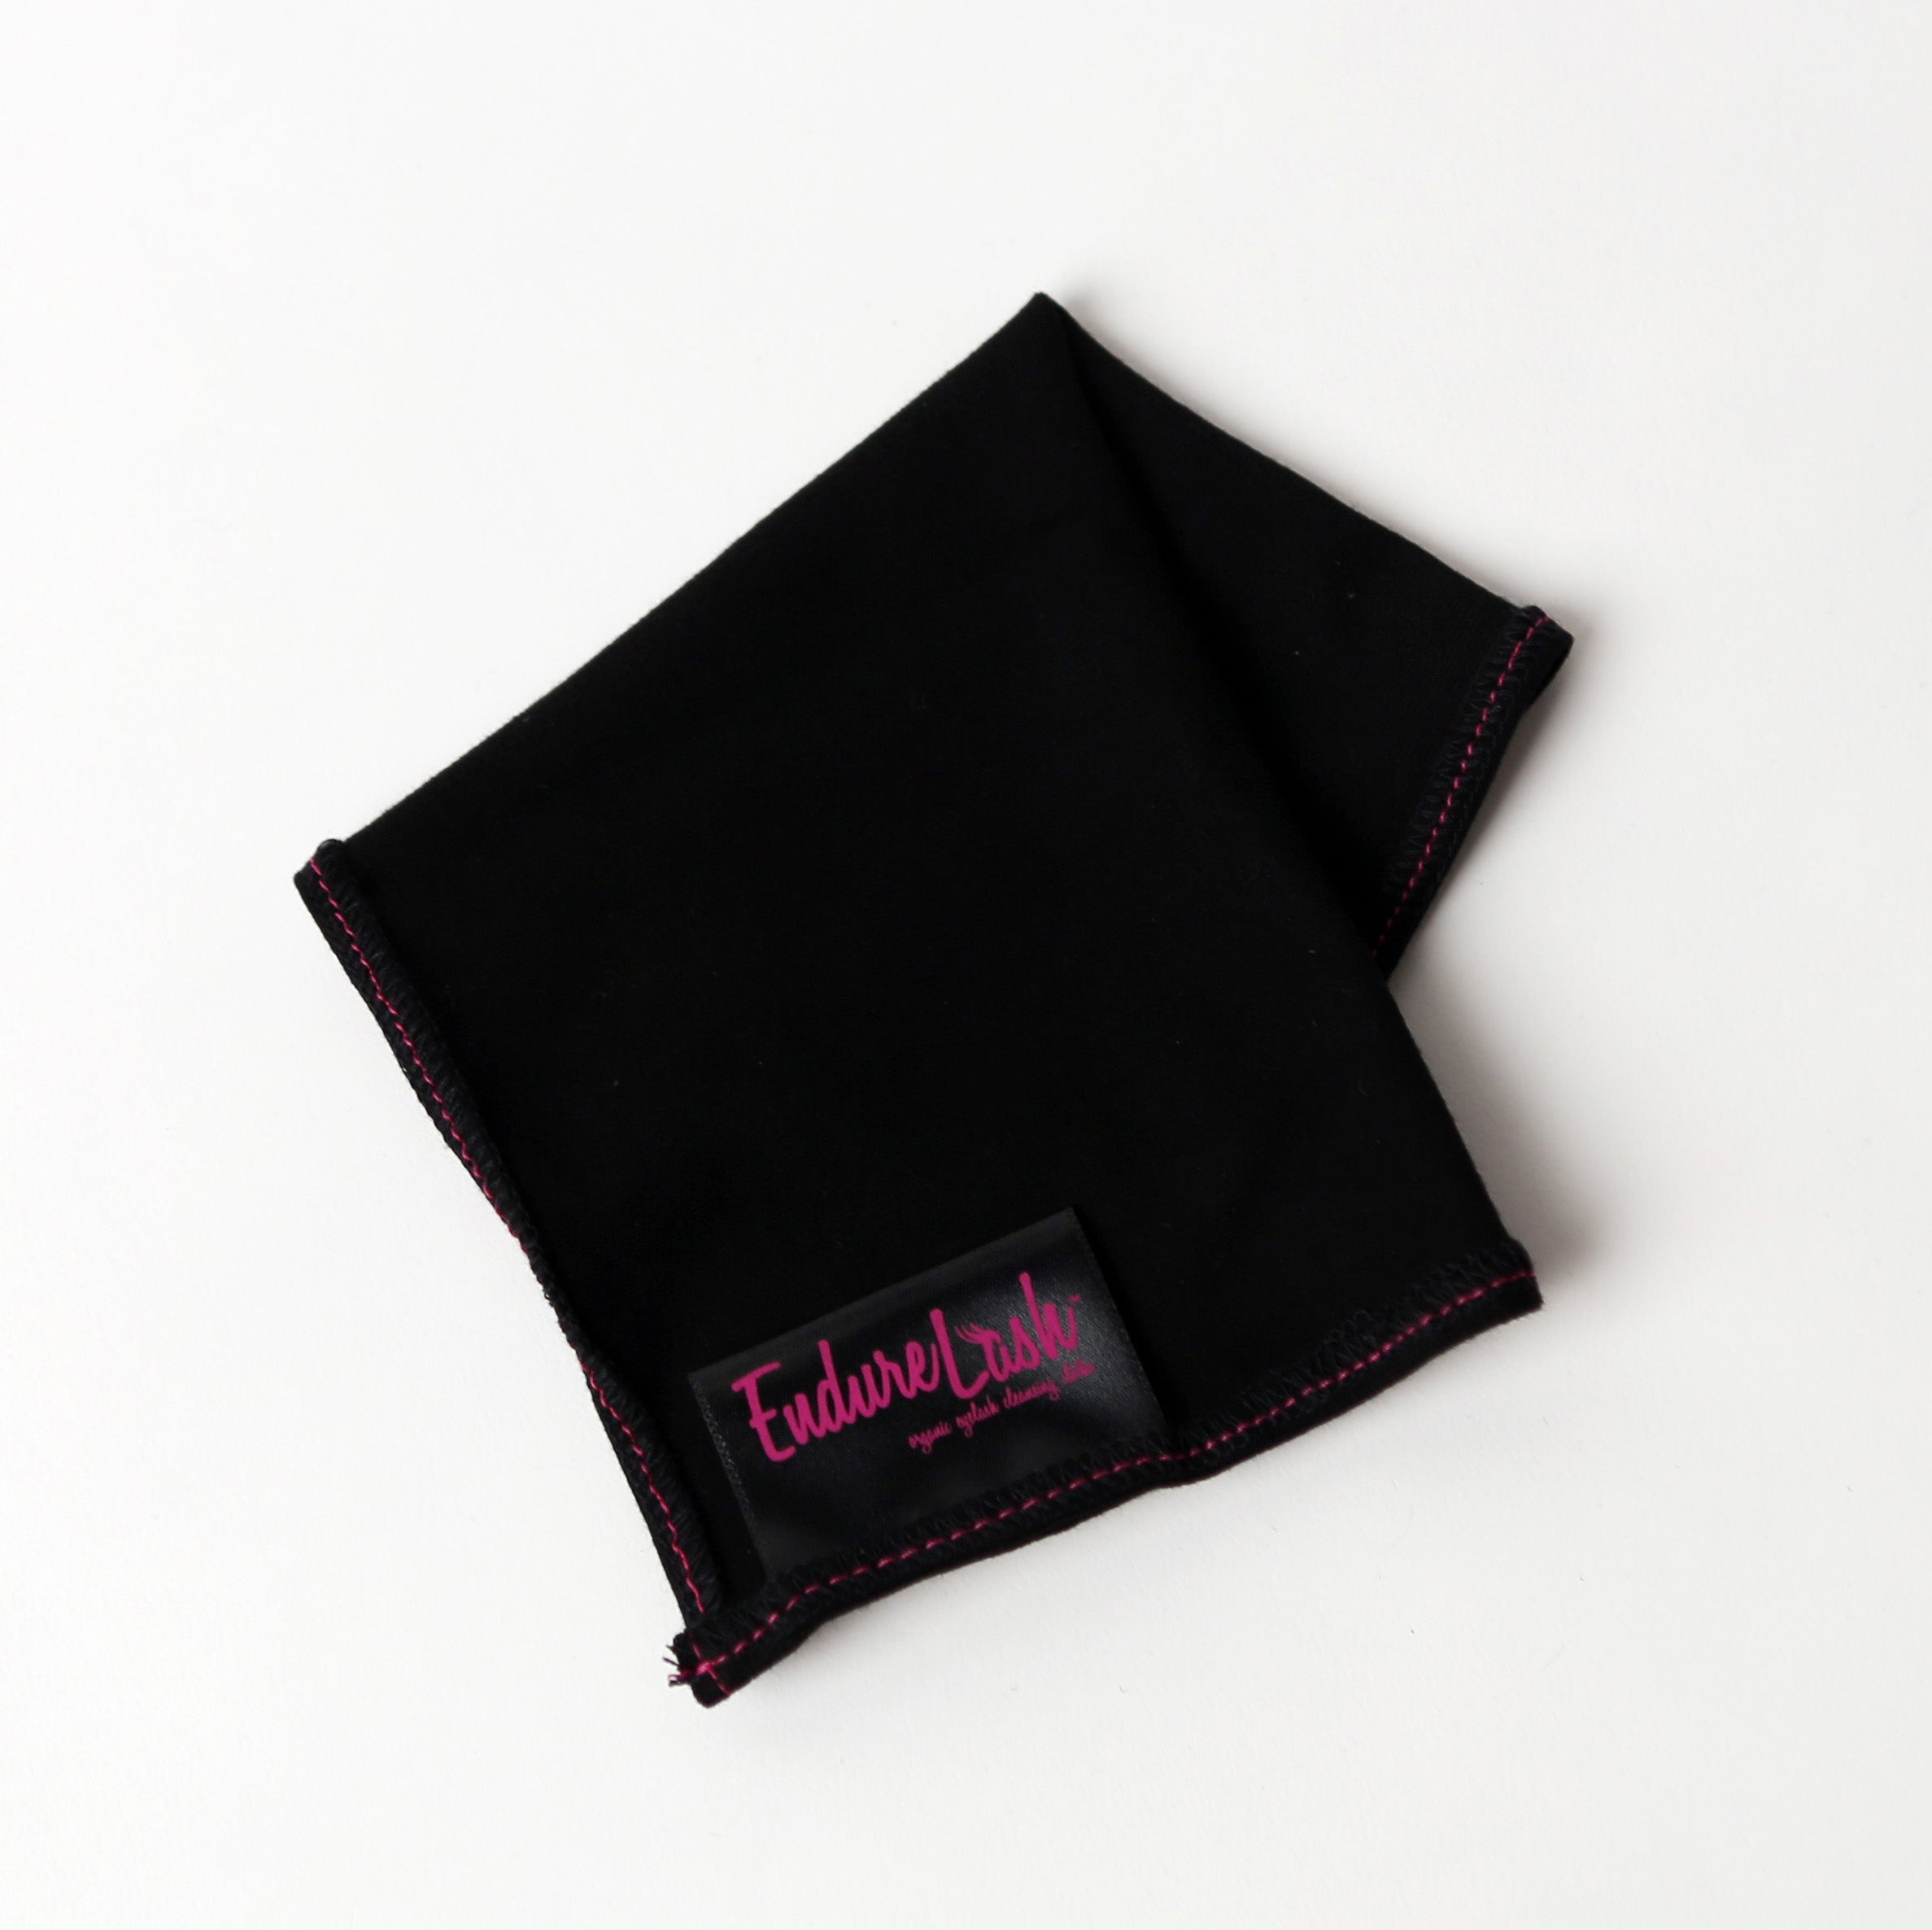 Backbar EndureLash® Professional Studio Eye Make-Up Removal Cloth Pack For Estheticians